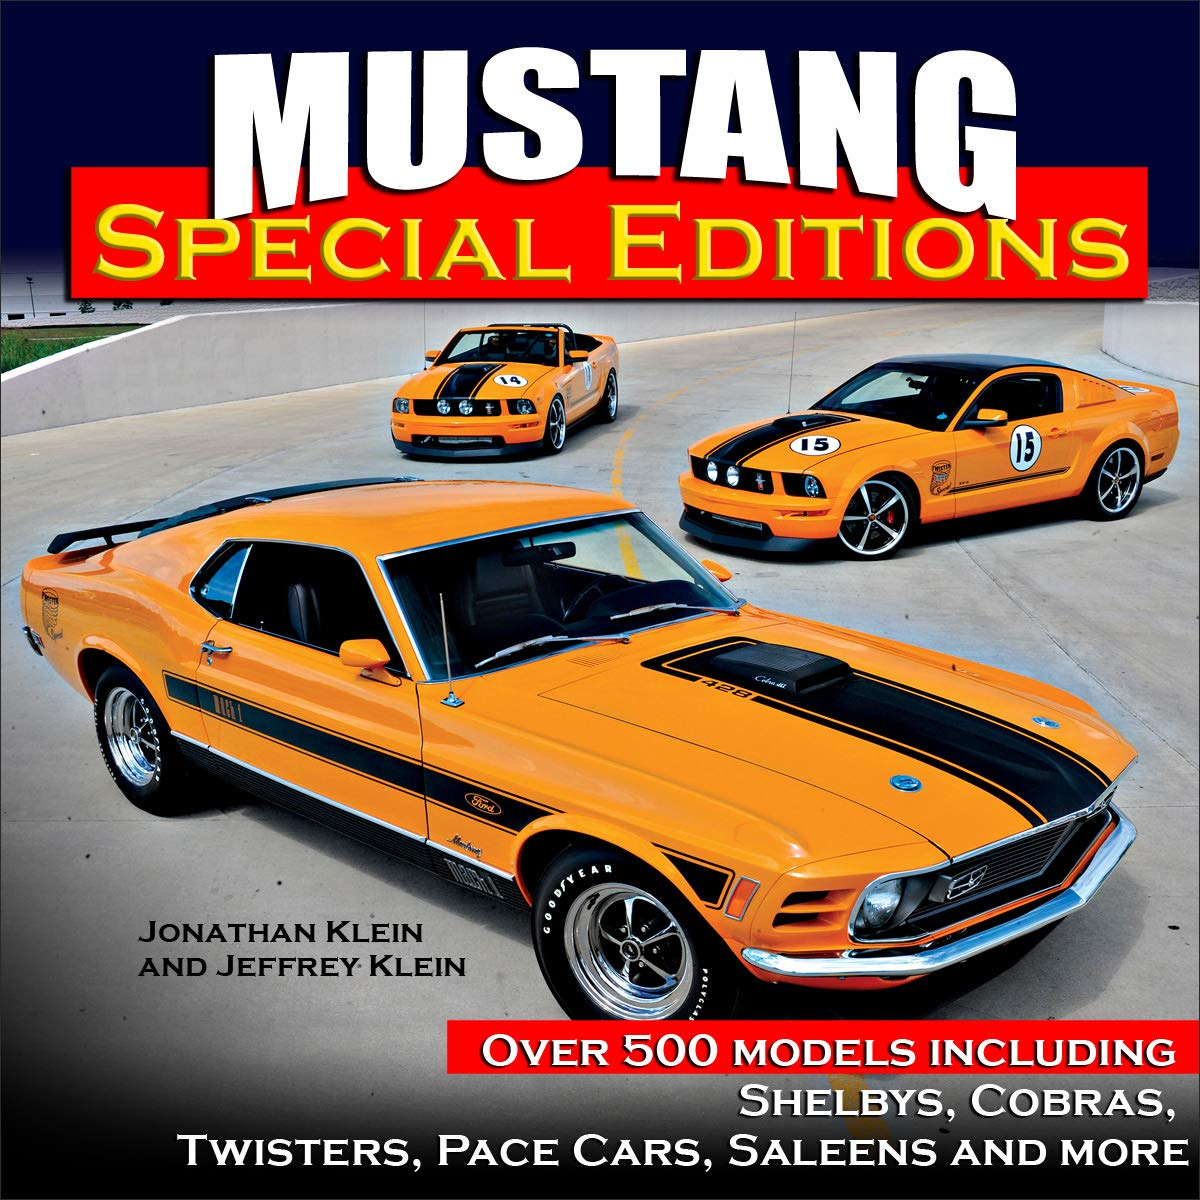 Mustang Special Editions: Over 500 Models Including Shelbys